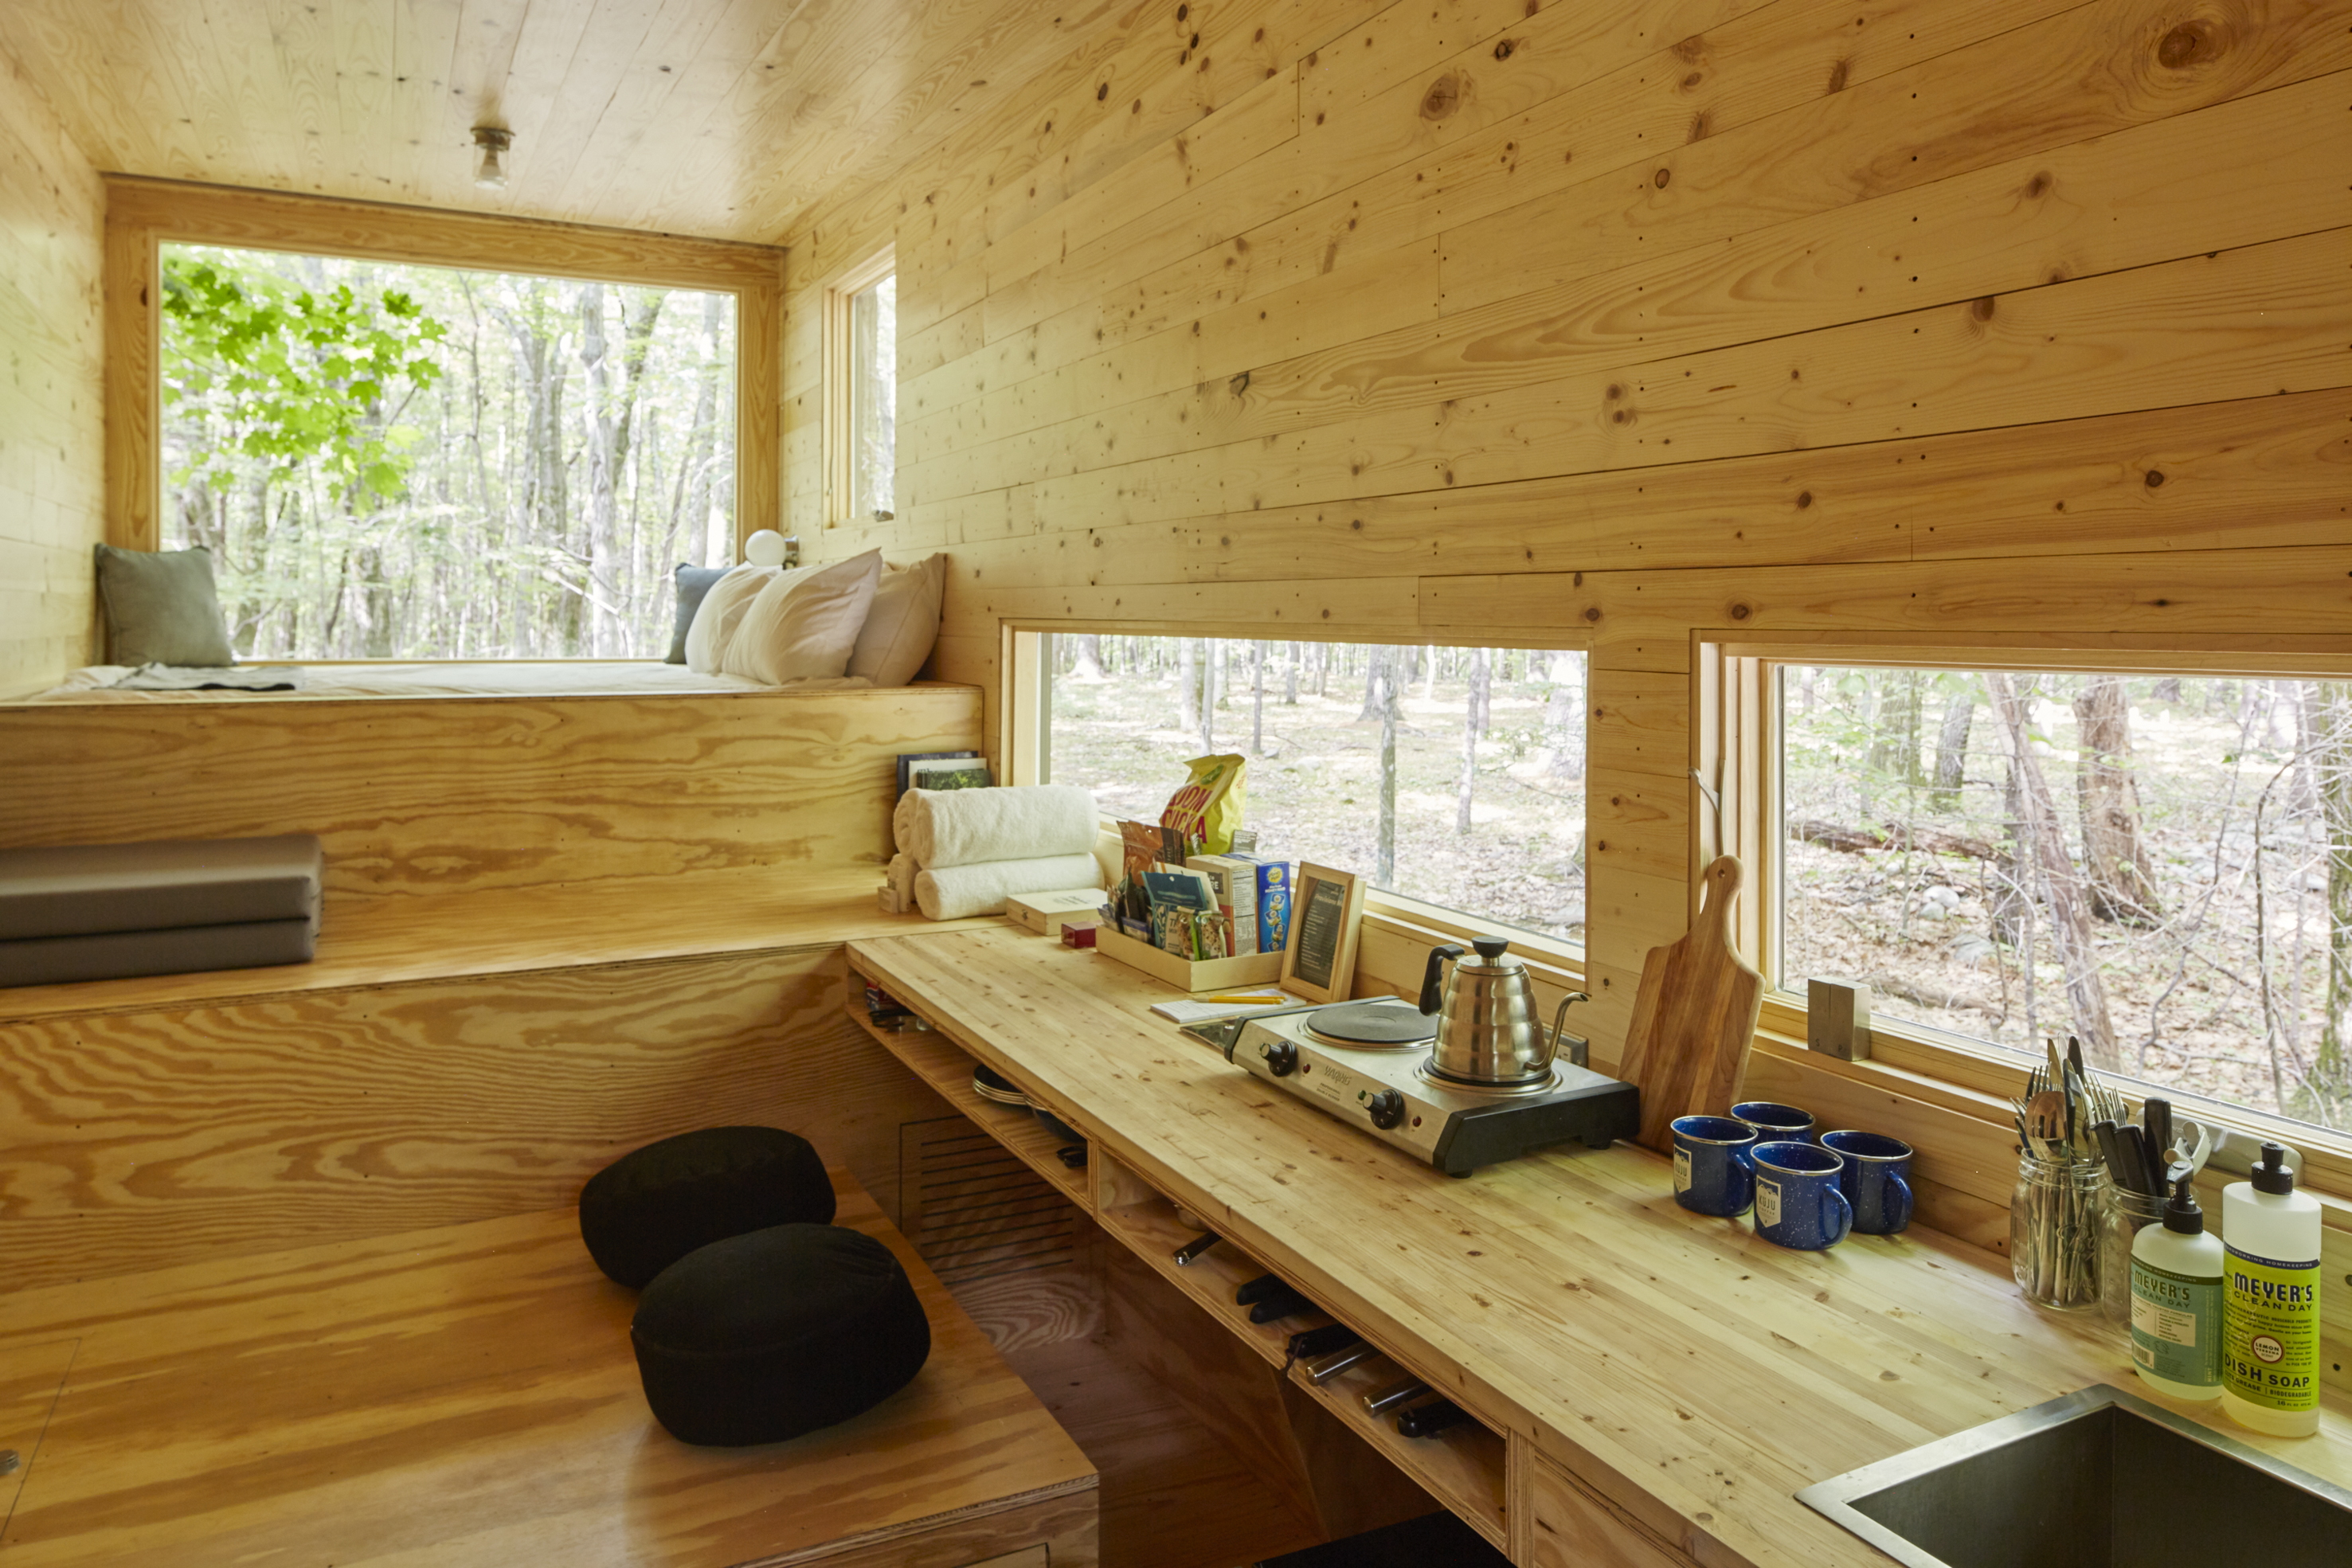 upstate cabins ny rent great in why is windows cabin obsessed room with new a everyone and owning york